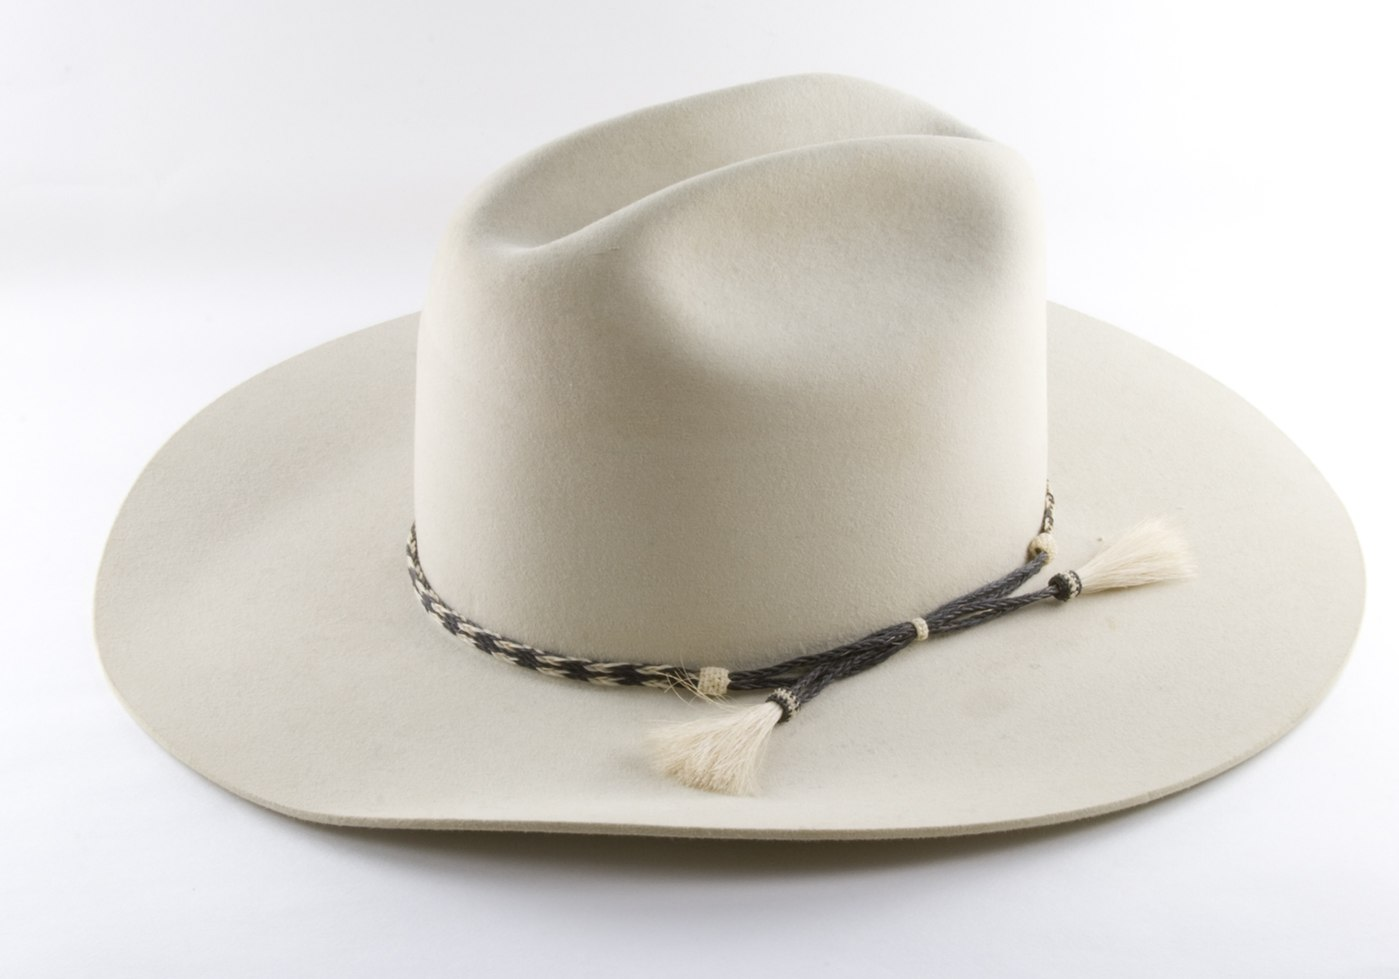 a76bfcb78bcad Cowboy hat - The complete information and online sale with free shipping.  Order and buy now for the lowest price in the best online store!